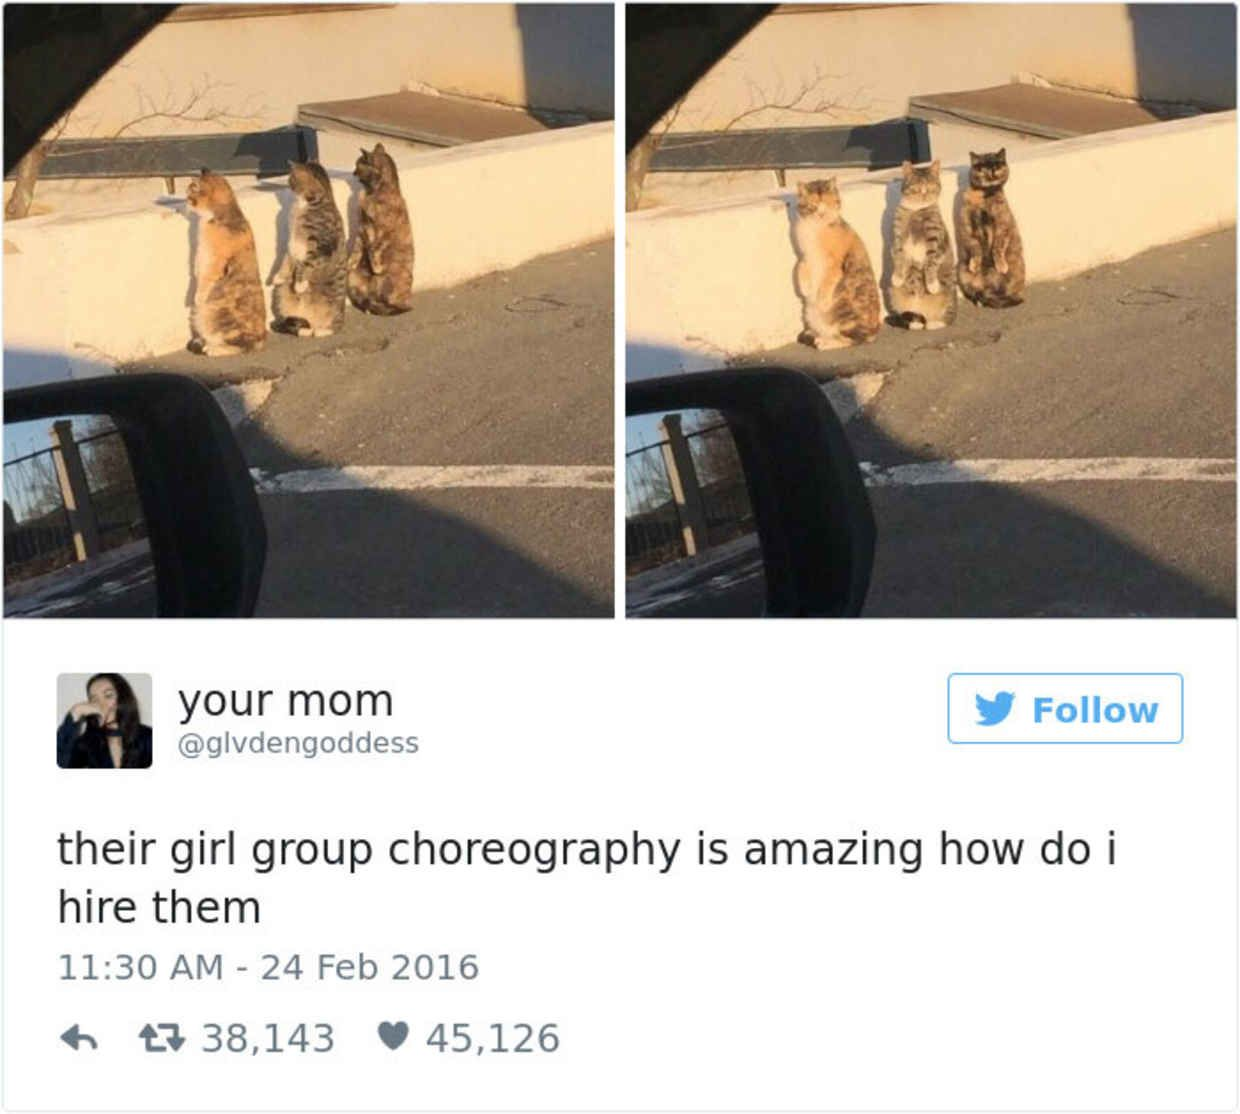 The Funniest Tweets About Cats In Funny Tweets Cat And - The 27 funniest tweets about cats in 2016